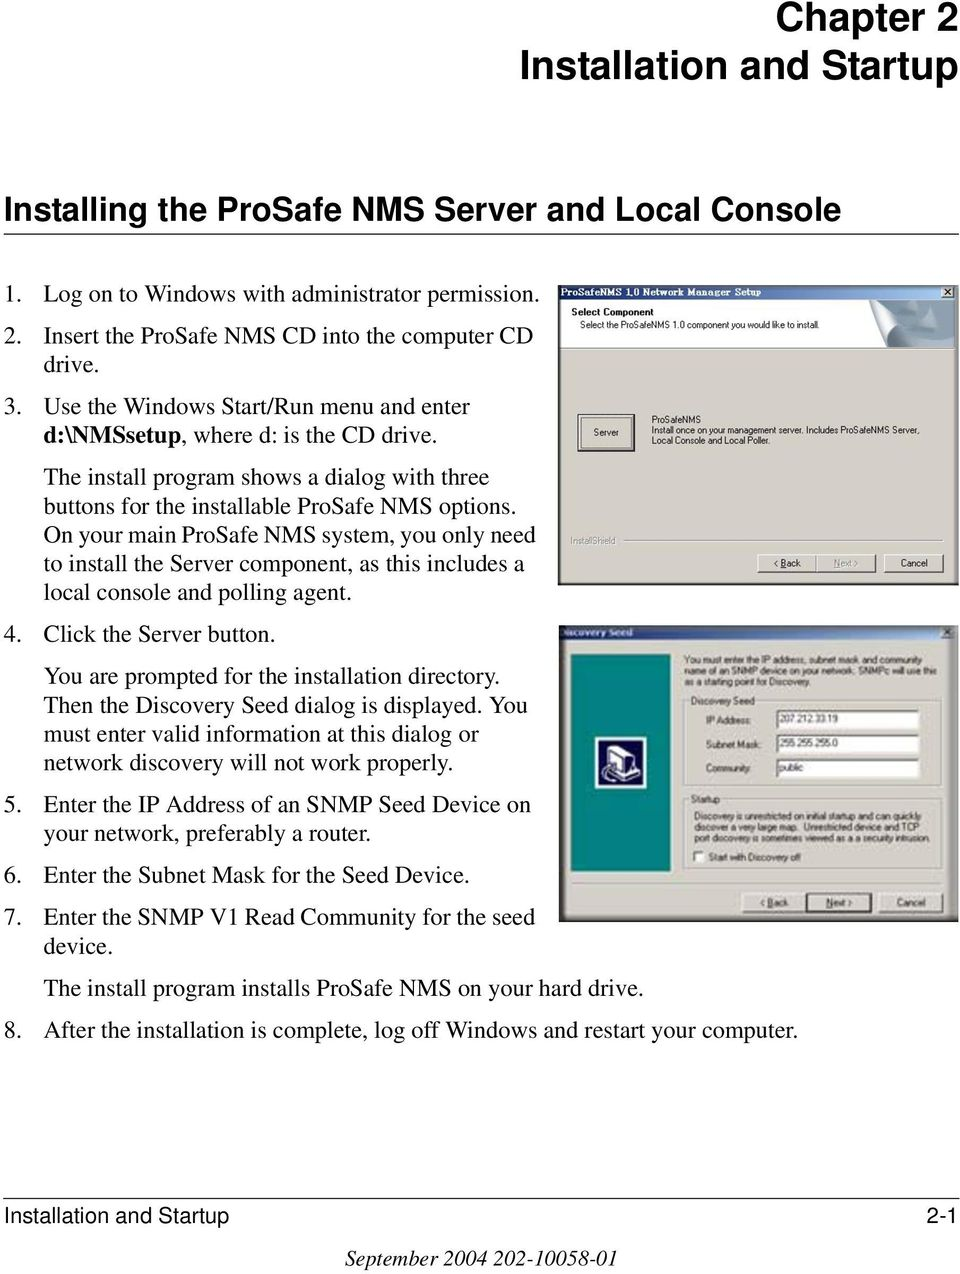 On your main ProSafe NMS system, you only need to install the Server component, as this includes a local console and polling agent. 4. Click the Server button.